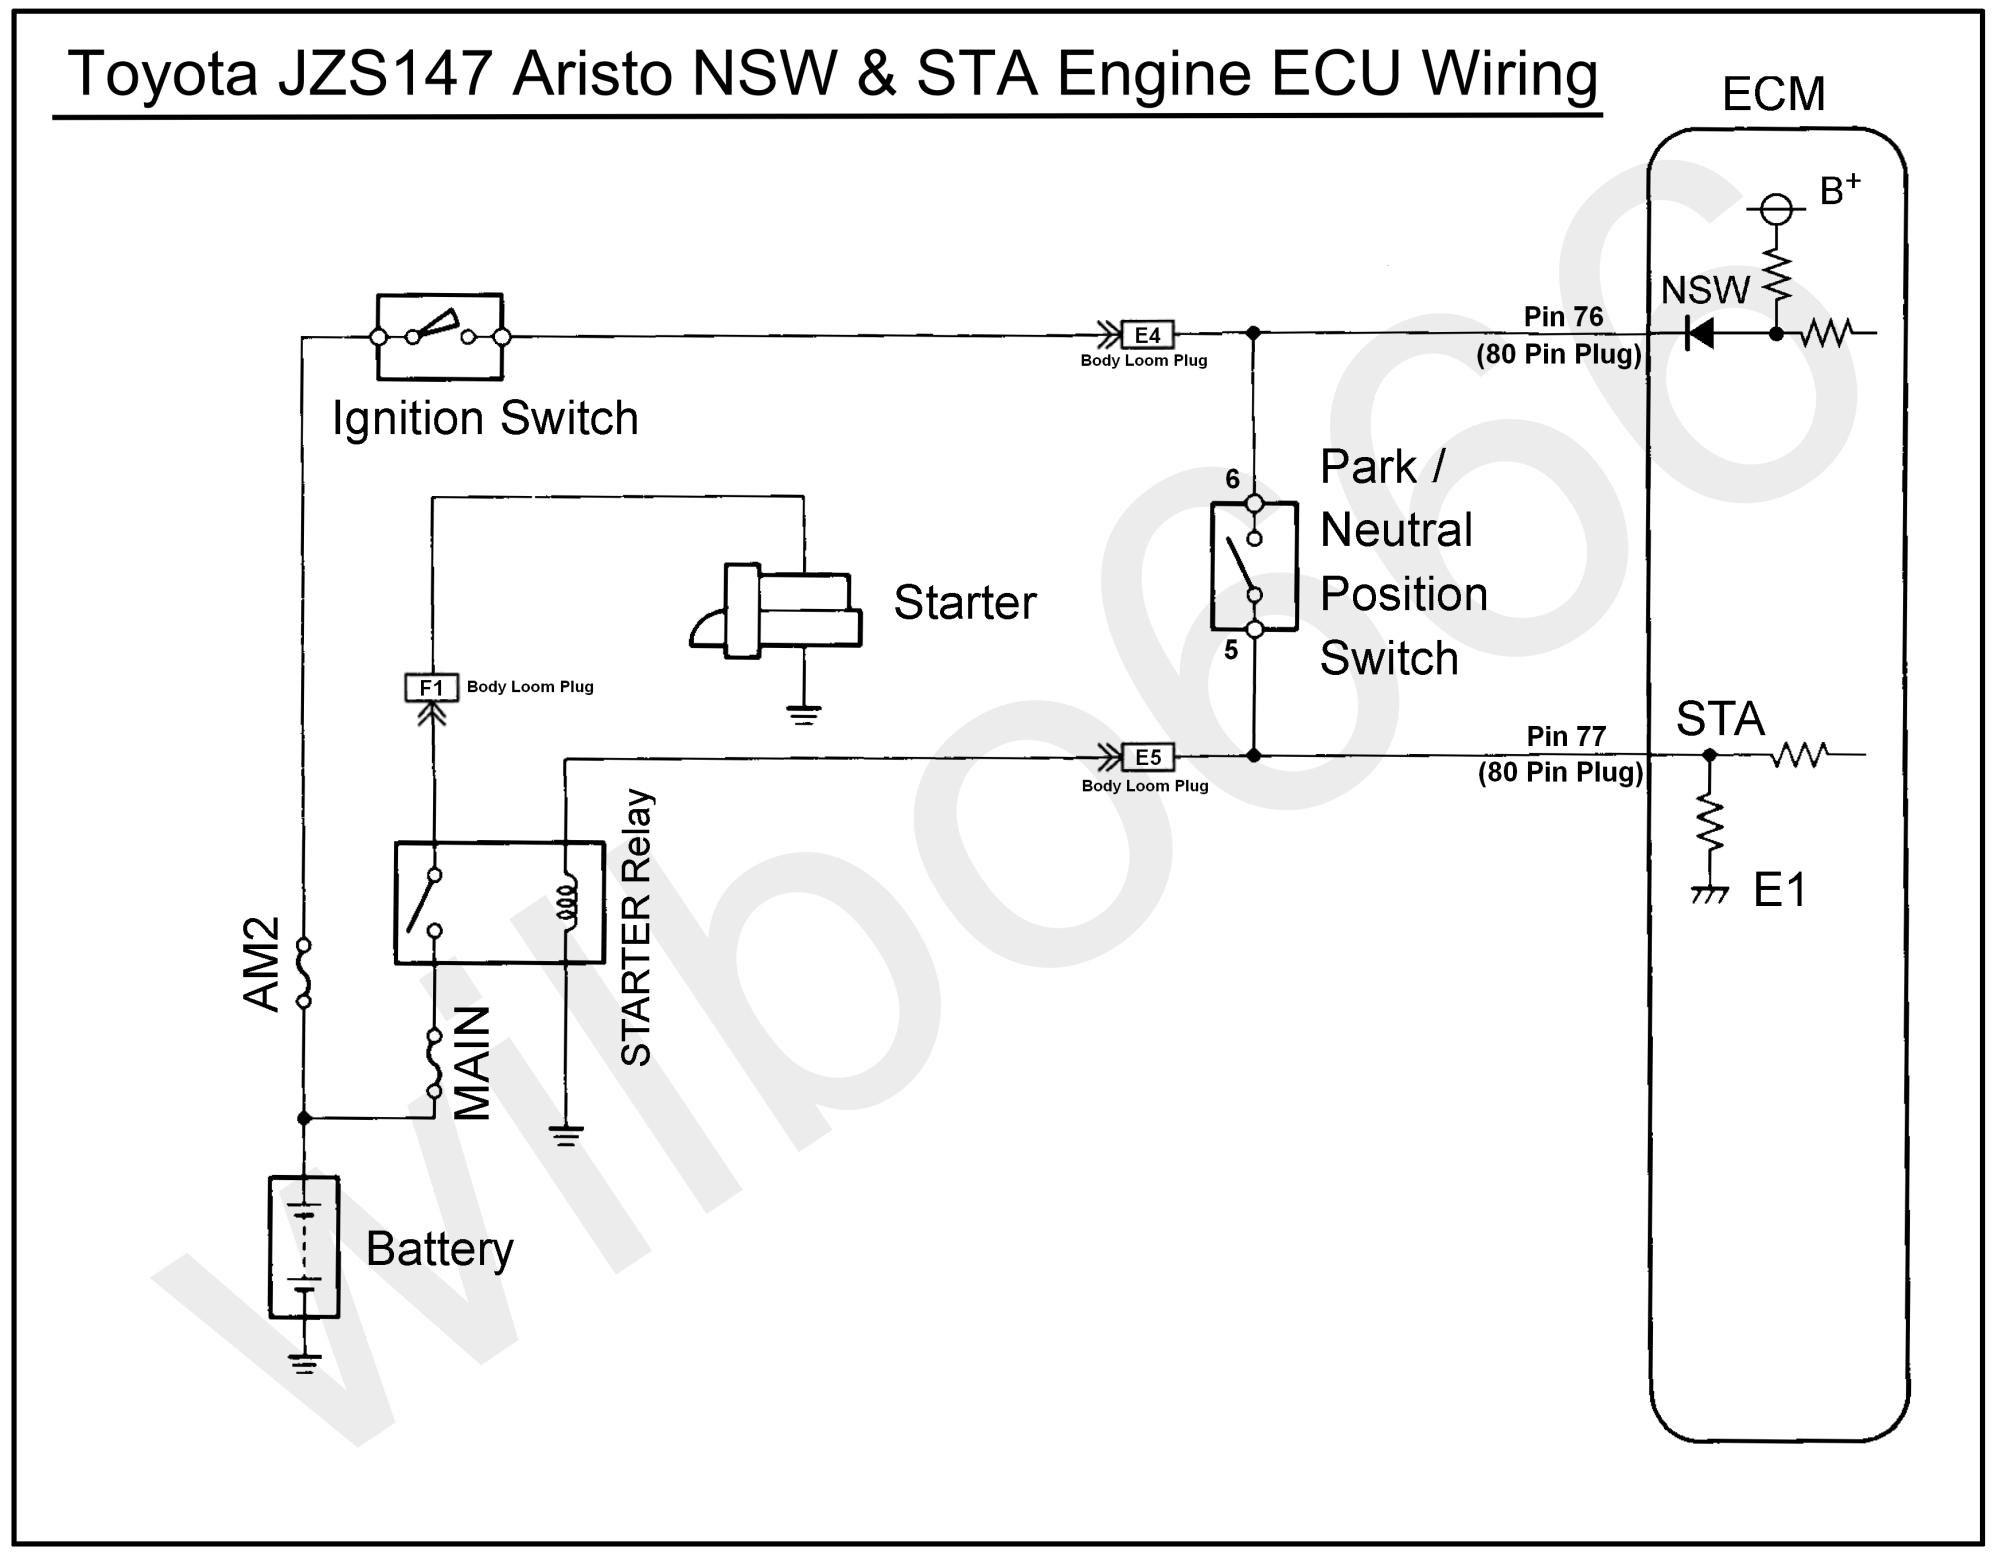 hight resolution of jzs147 toyota aristo 2jz gte nsw sta wiring diagram